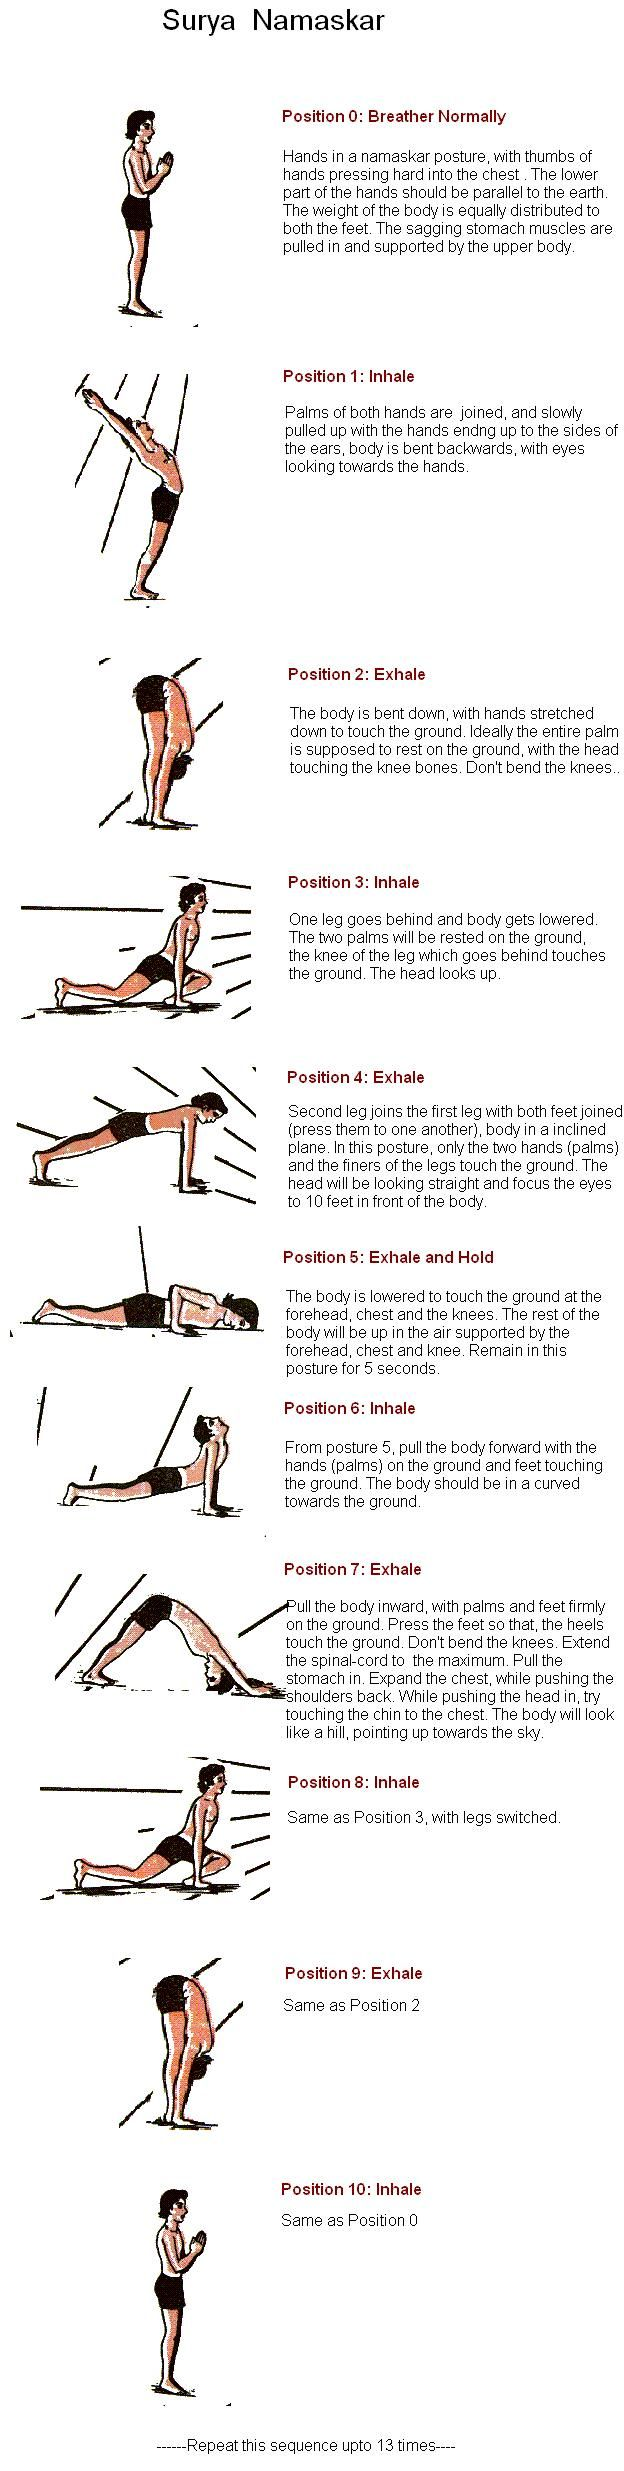 Surya Namaskar - Sun Salutation,any health fitness routine is incomplete without this.